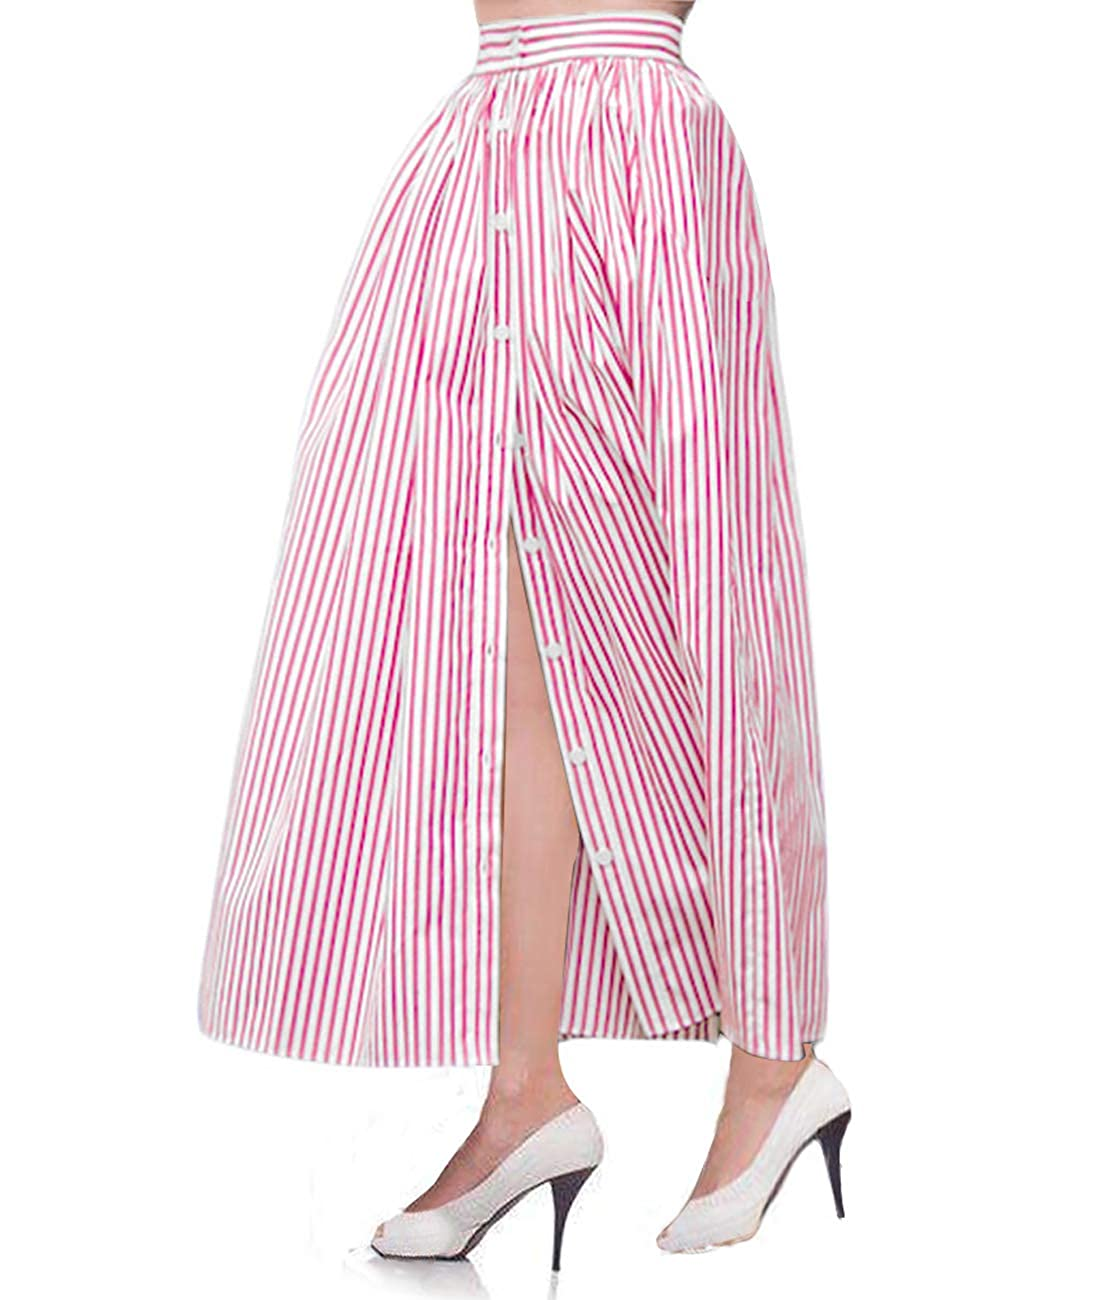 Victorian Skirts | Bustle, Walking, Edwardian Skirts Lalagen Womens Striped Front Slit Ankle Length Button Front High Waist Maxi Skirt $22.99 AT vintagedancer.com